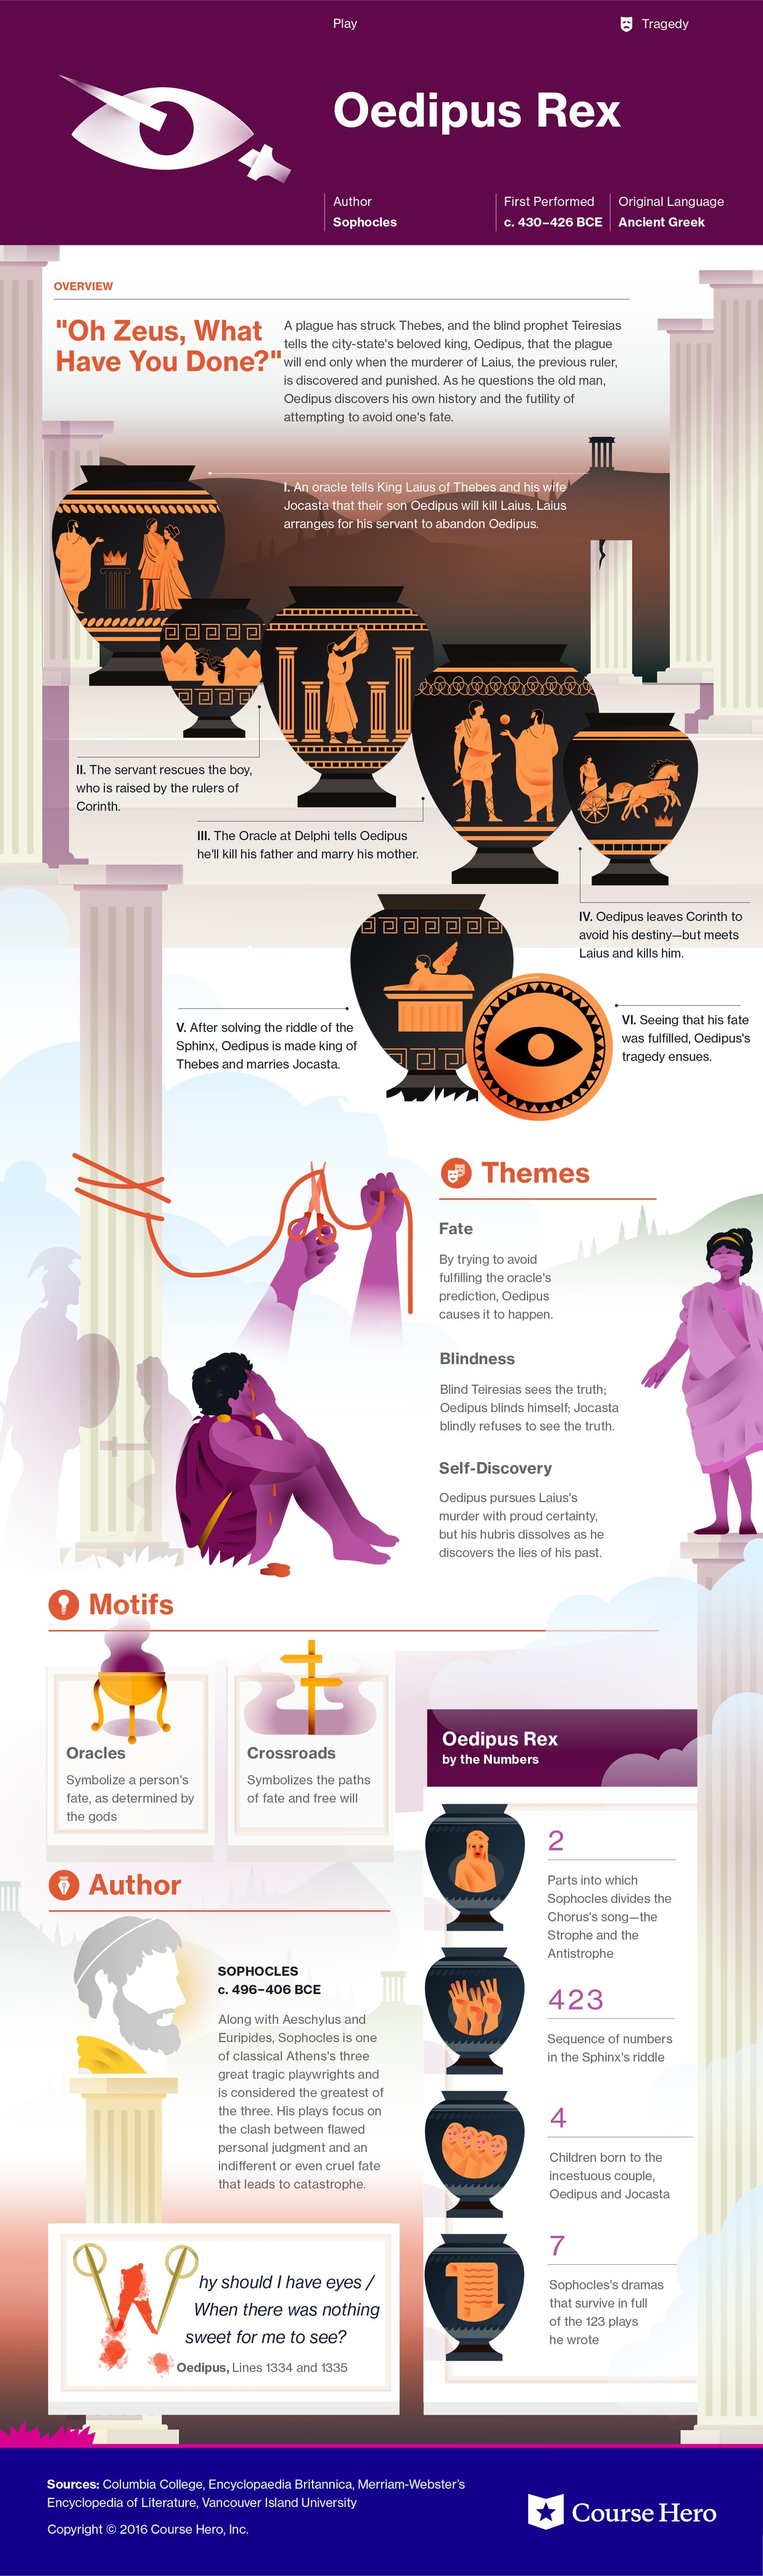 the riddle of the sphinx in oedipus rex a play by sophocles Oedipus rex is a play about king oedipus  oedipus and the riddle of the sphinx cite this page: carr, ke oedipus rex – sophocles – summary and themes.